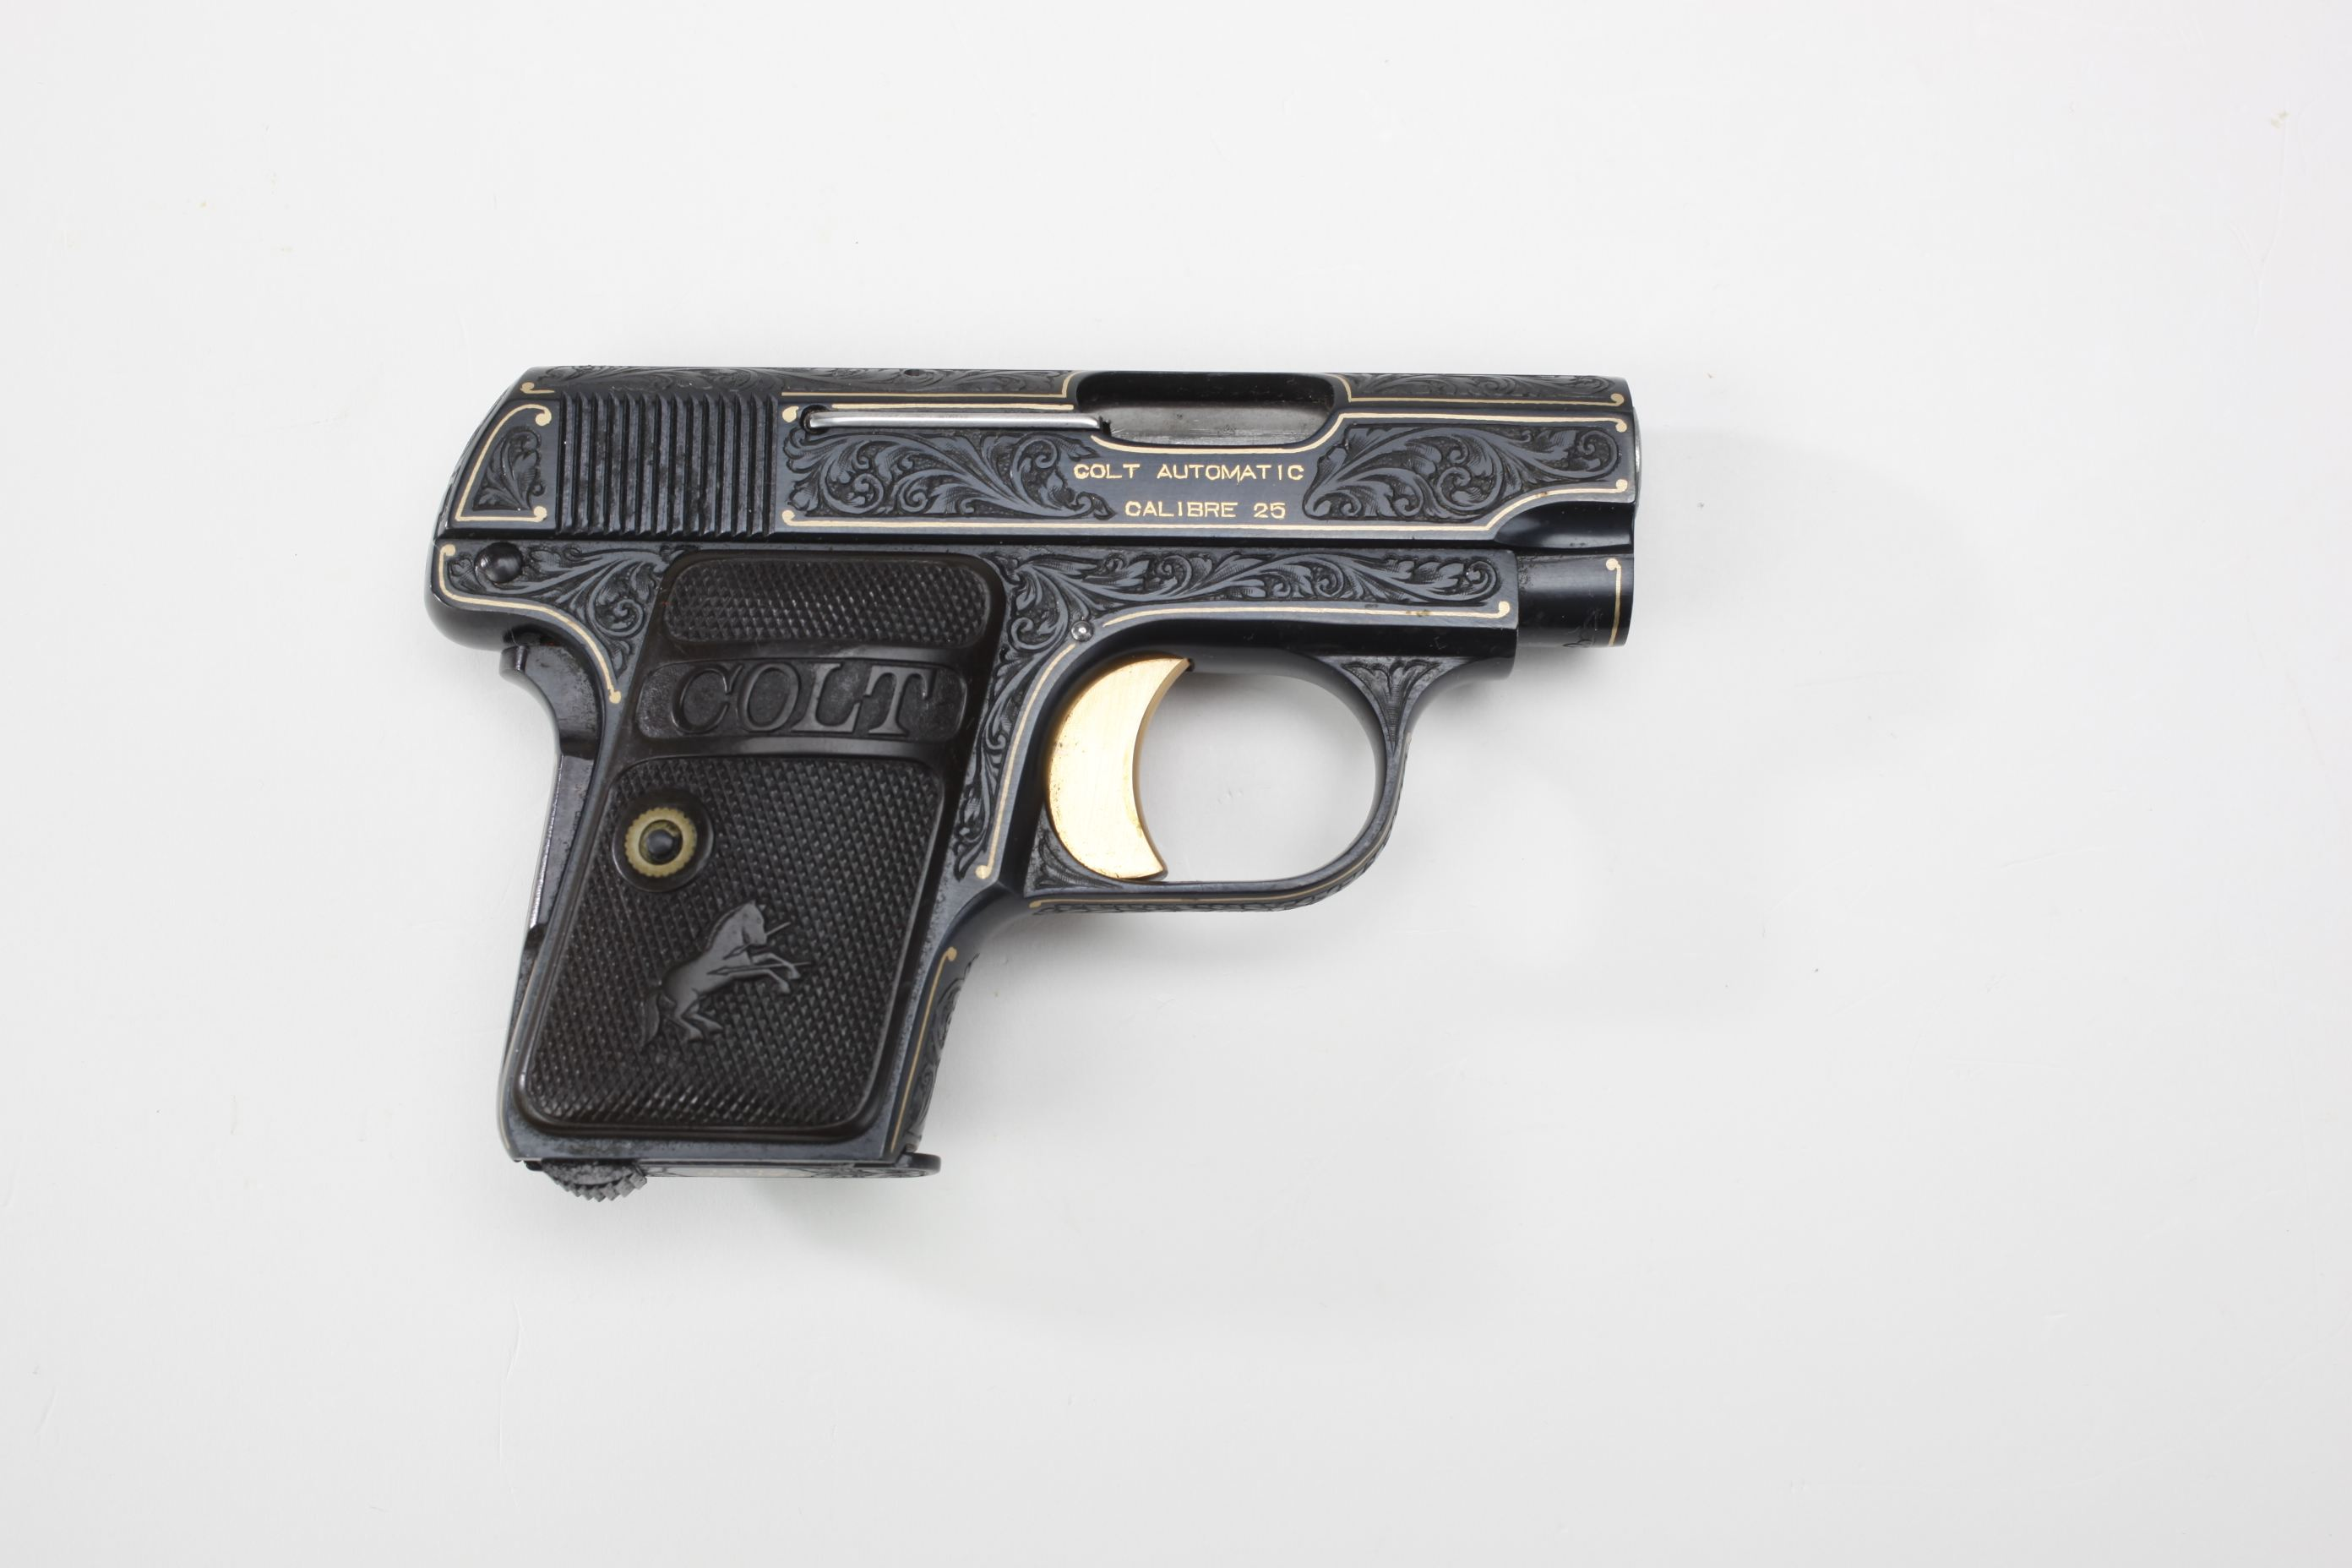 Colt (Hartford, CT) Model 25 Semi-Automatic Pistol